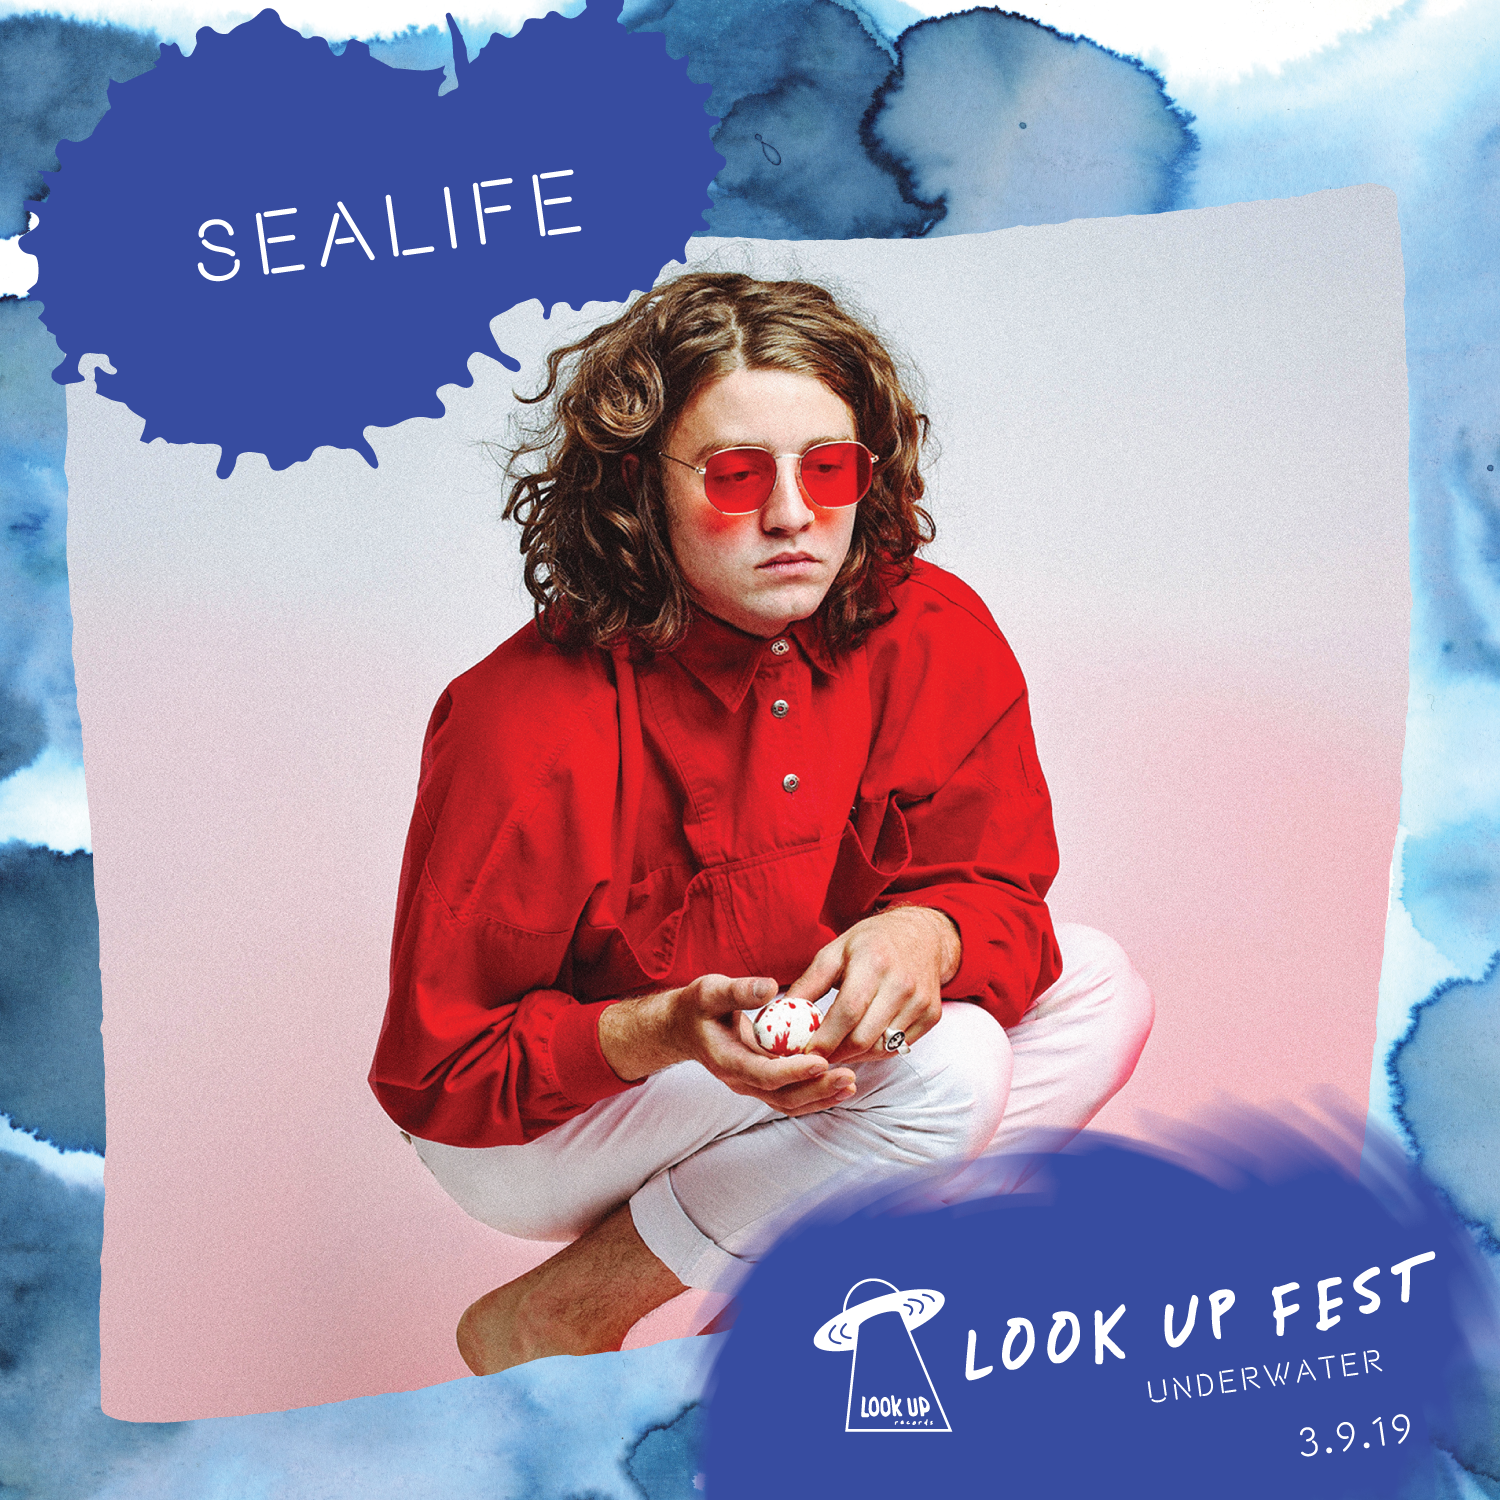 SEALIFE - Sealife brings love-coated psychedelic pop from Seattle straight to your heart. Their sonic storytelling paints a landscape of vulnerable lullabies. Originating from bedroom pop and stream-of-consciousness songwriting, Sealife pulls from Sade, Steely Dan, and The Smiths to craft lush sonic dreams. With a nod to Seattle grunge, Sealife is no stranger to fuzz or esoteric lyrics. Brennan Moring, lead for Sealife, also sings and plays keys for Seattle psych poppers Peyote Ugly. Brennan began writing poetry and playing guitar at an early age, but after learning piano, he began a conquest for total instrumental control in his songwriting and storytelling. Now, with Sealife, he's writing love songs from the perspective of the ghost that quietly waits up for you at night.